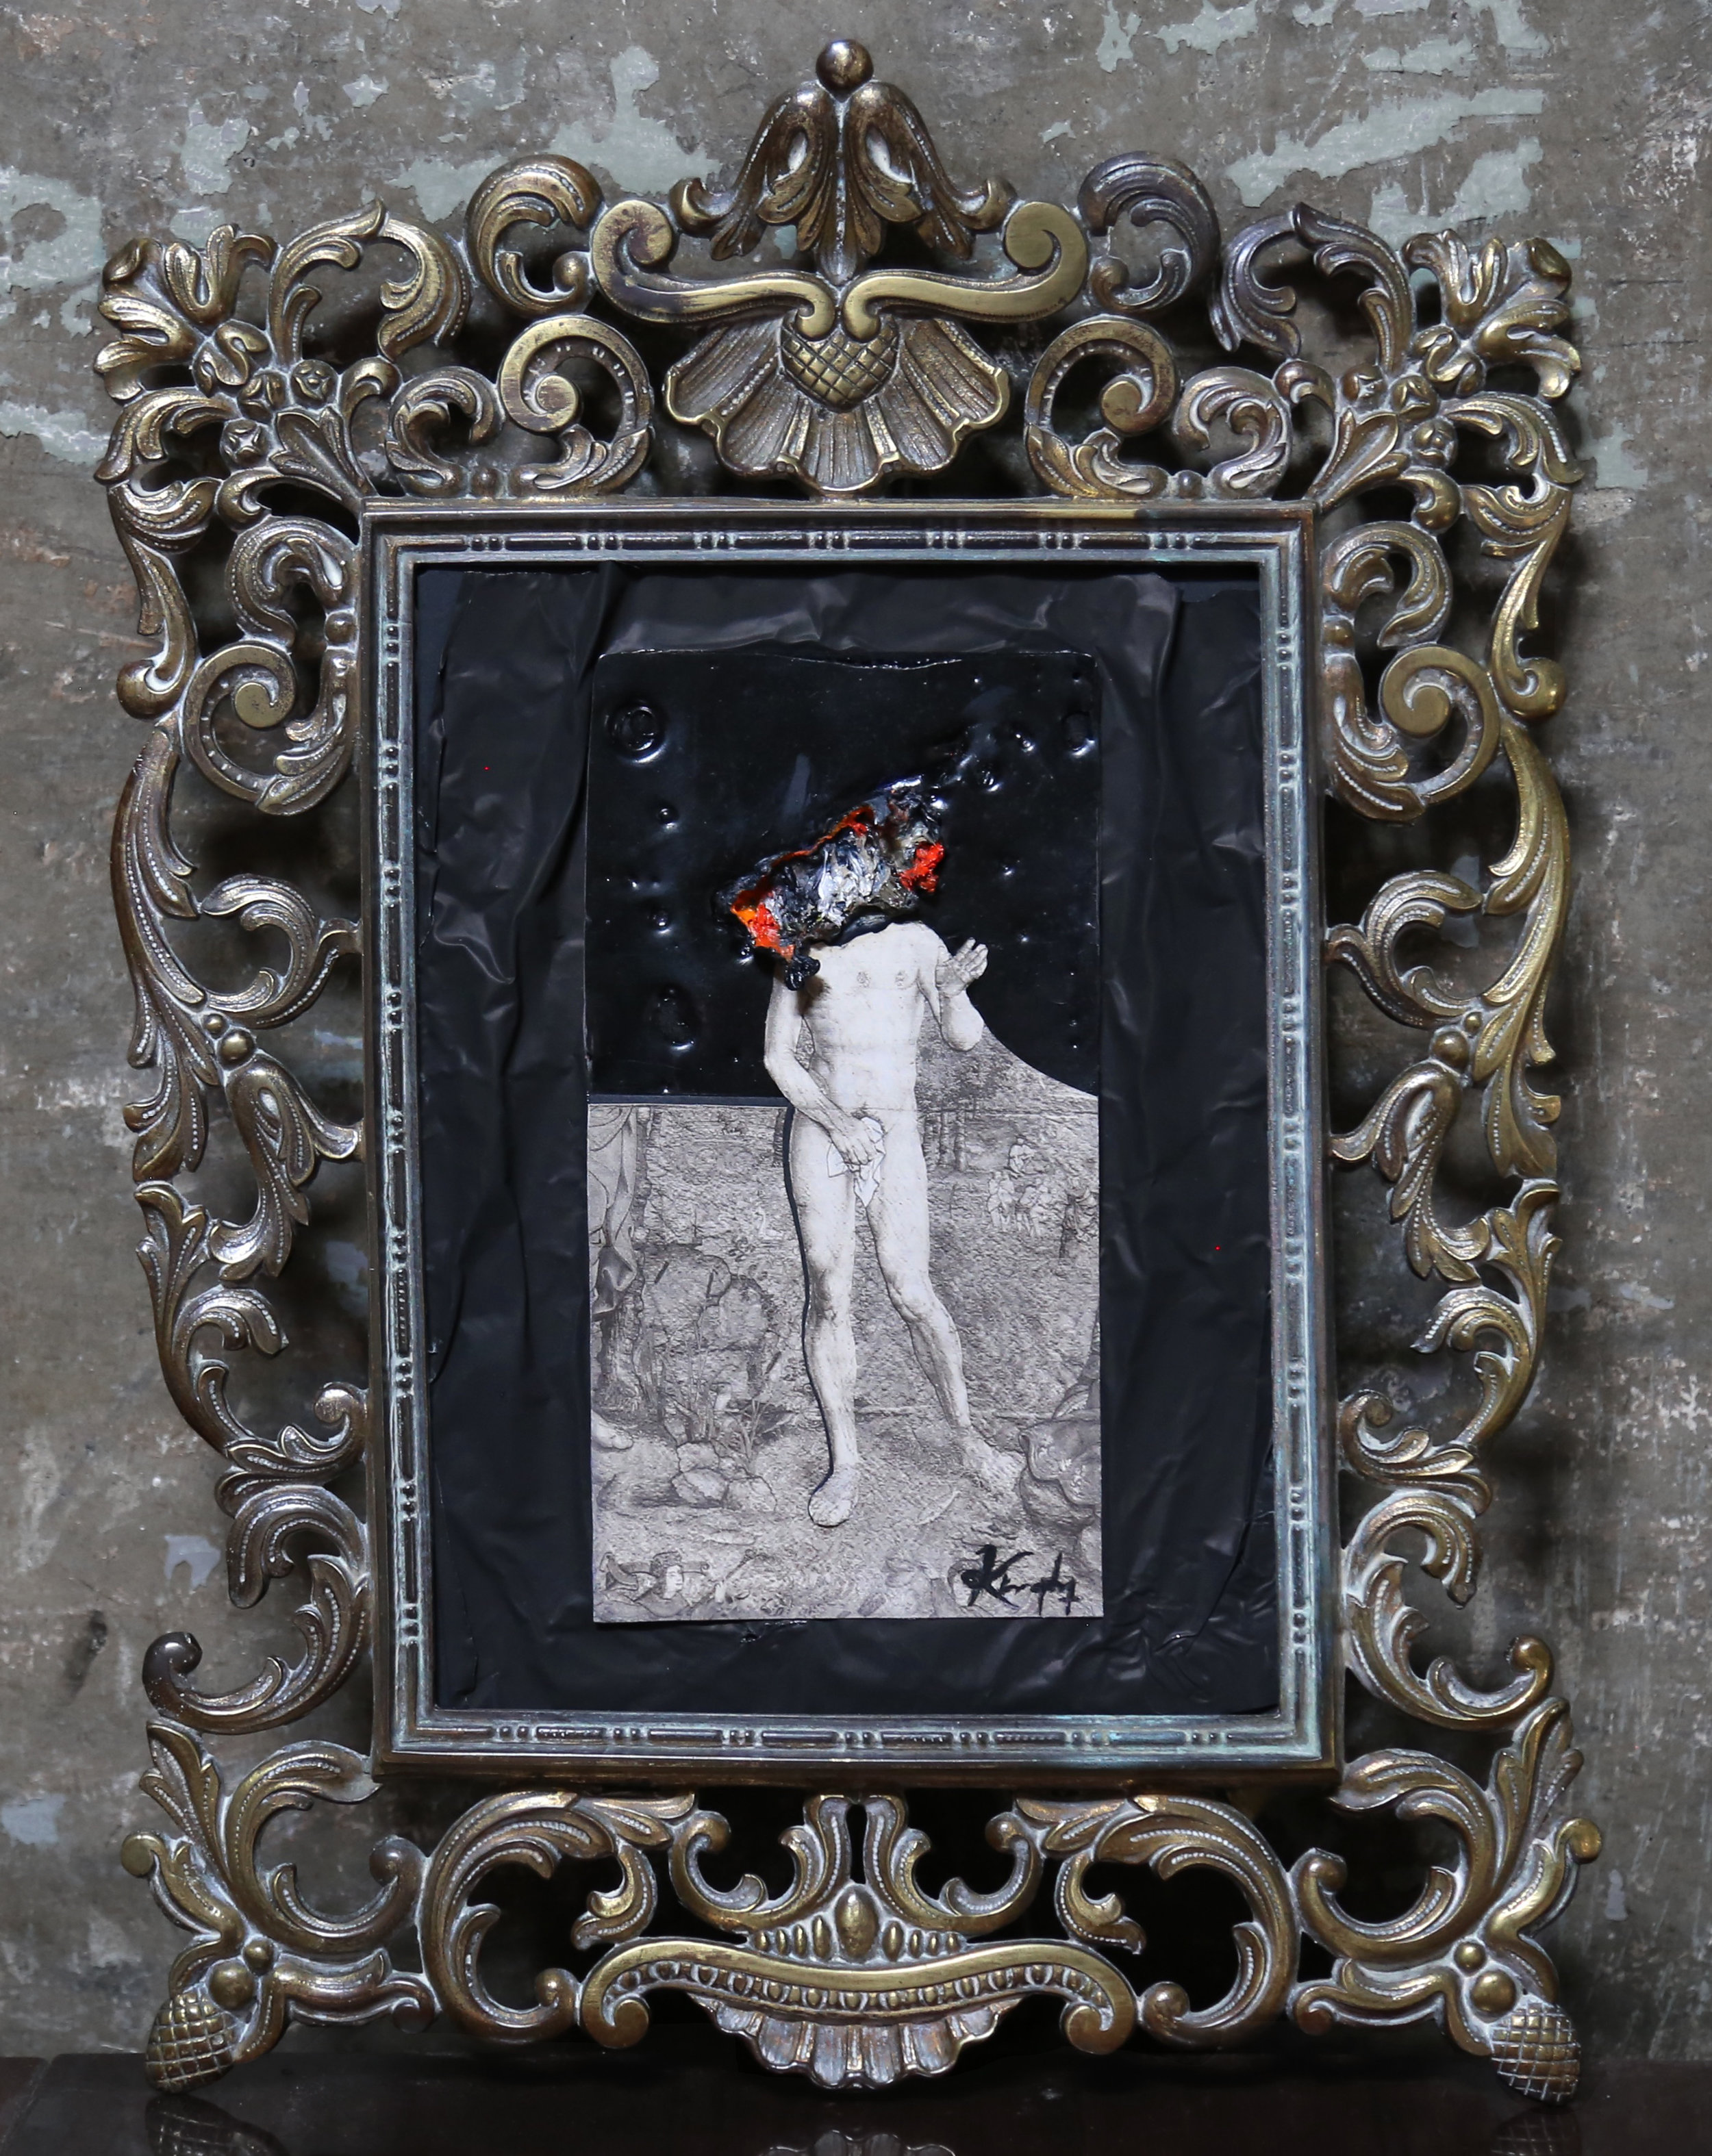 Solicitude - Oil, Paper, Tin & Antique Frame 28cm x 36cm